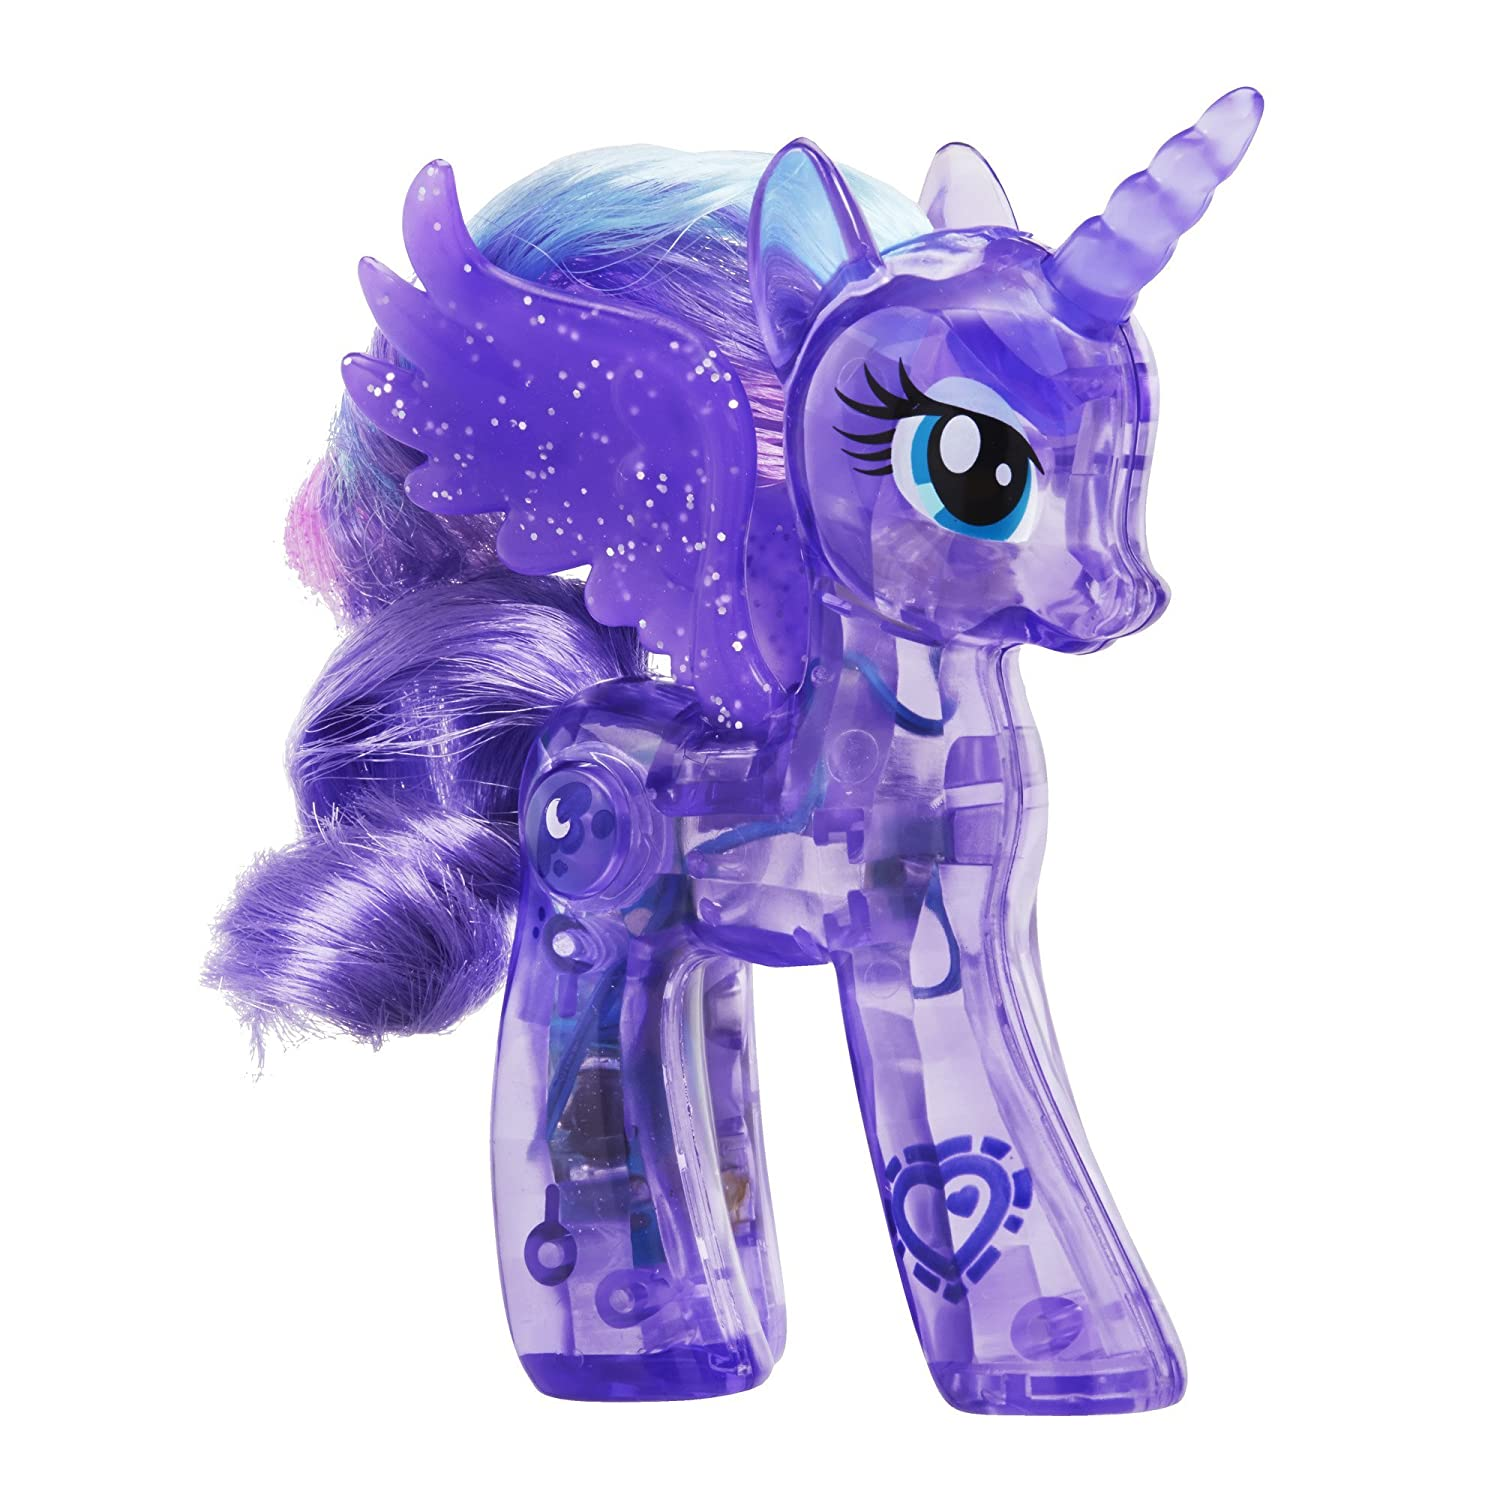 Amazon.es: My Little Pony Explore Equestria Sparkle Bright 3.5-inch Princess Luna by My Little Pony: Juguetes y juegos